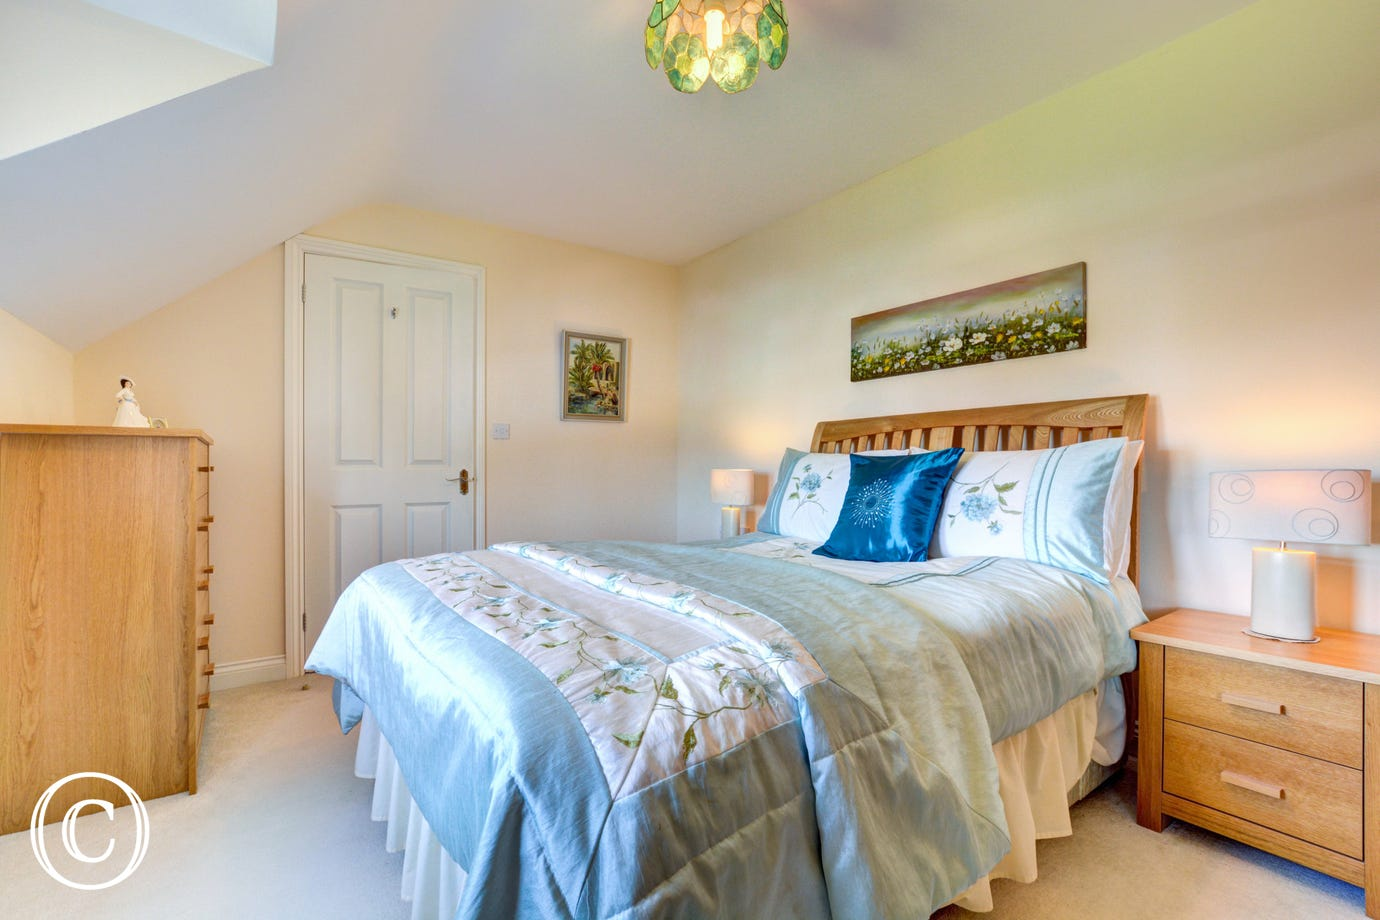 This holiday accommodation provides a second double bedroom